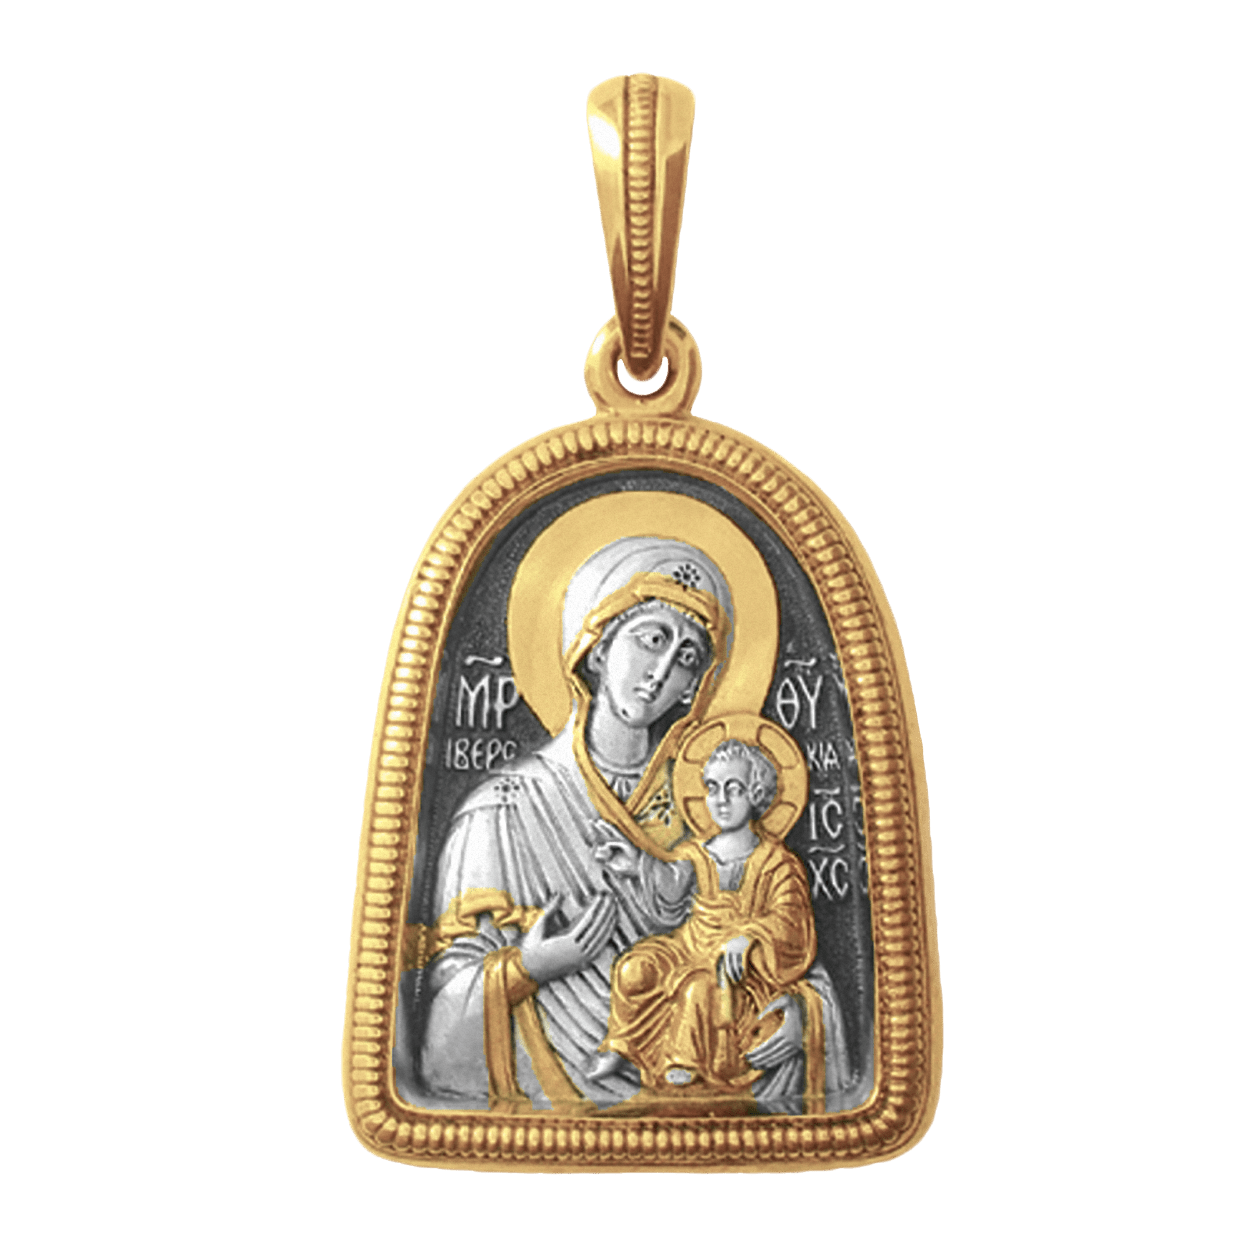 Russian-Orthodox-icon-silver-medal-pendant-OUR-LADY-OF-IVER-Master-Jeweler-Fedorov